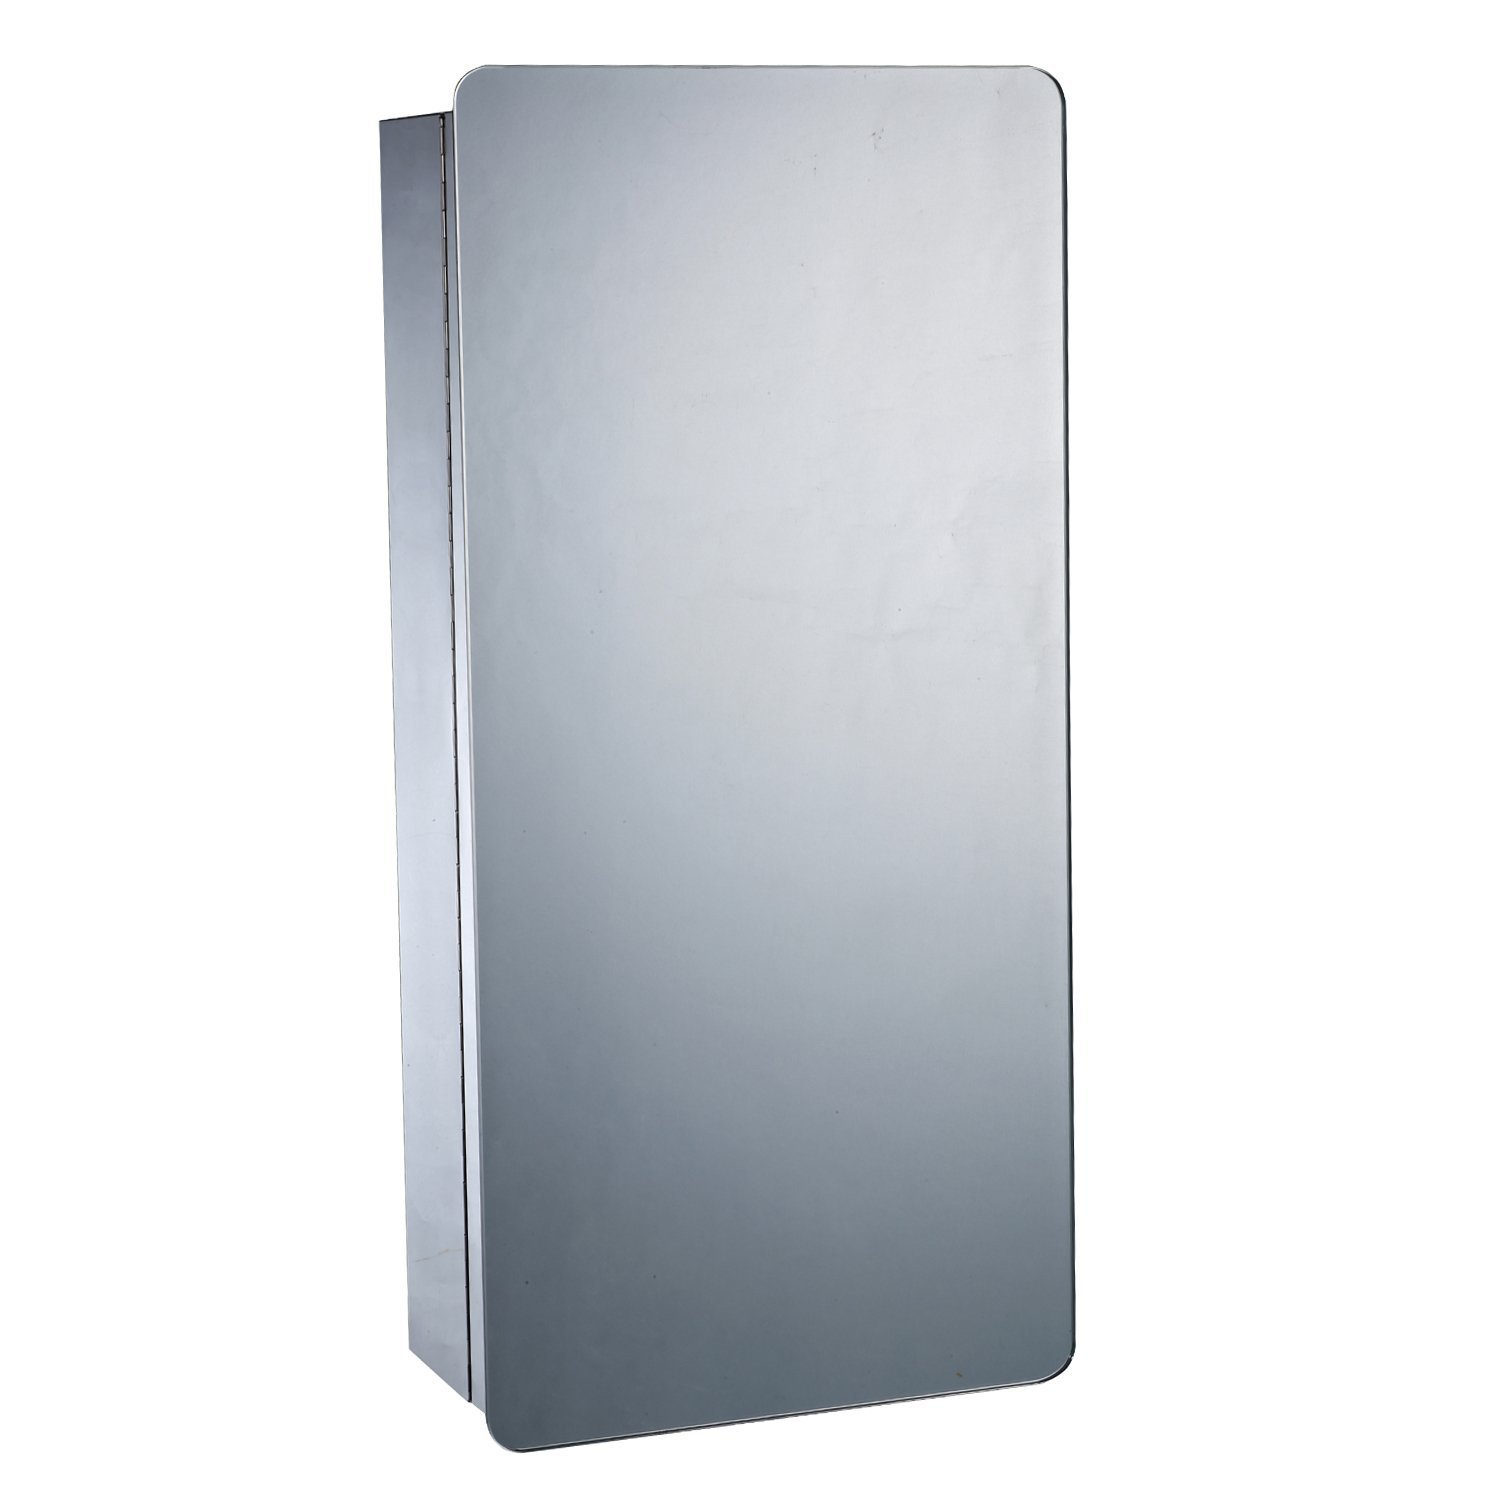 HOMCOM Wall Mounted Modern Bathroom Cabinet Mirror Stainless Steel Cupboard 6 Compartments Storage Shelves 63Hx30Lx15D(cm) Sold by MHSTAR